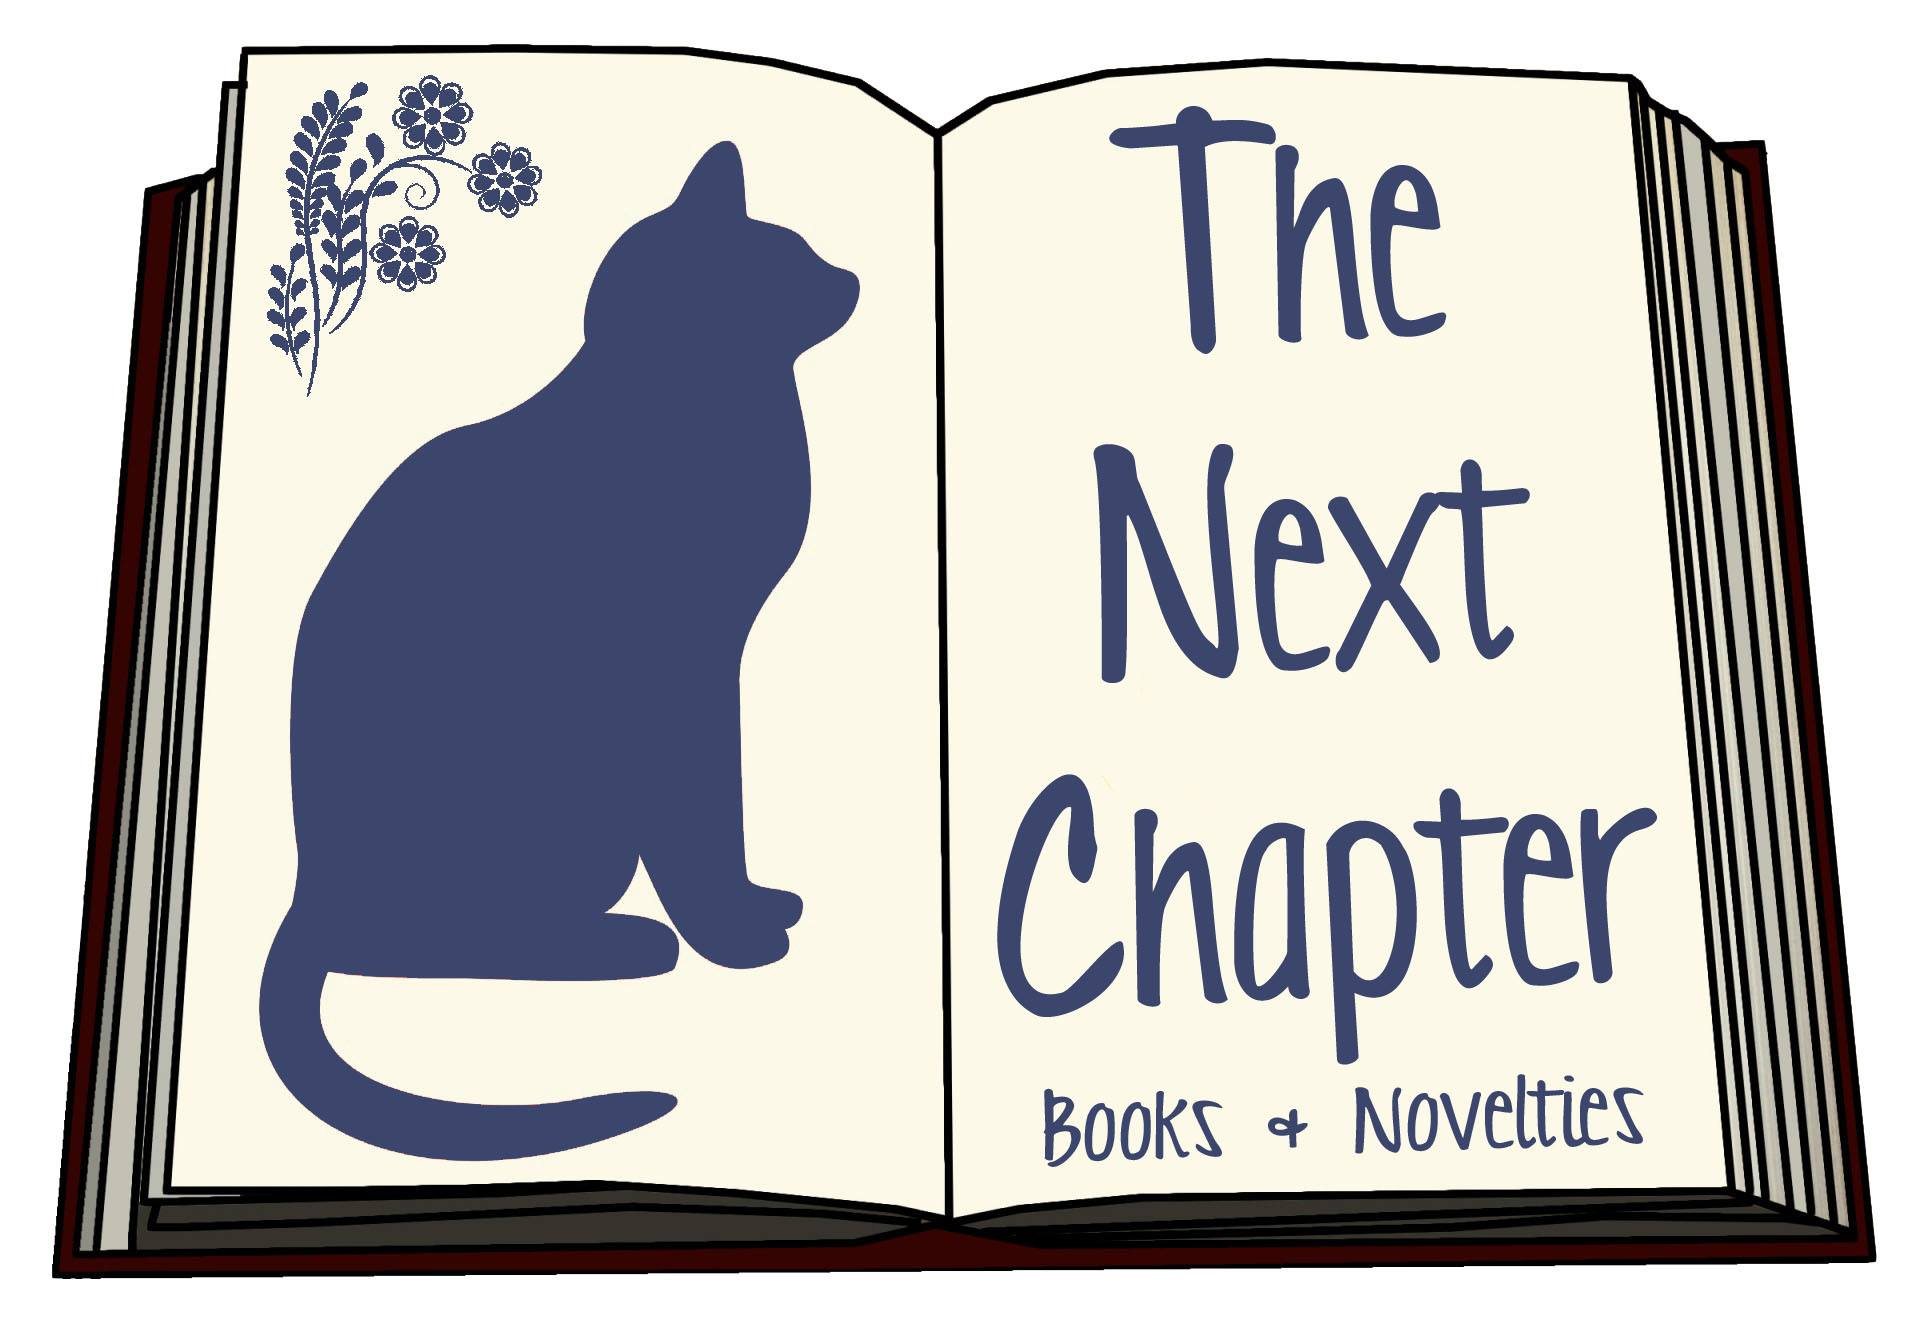 The Next Chapter Books & Novelties